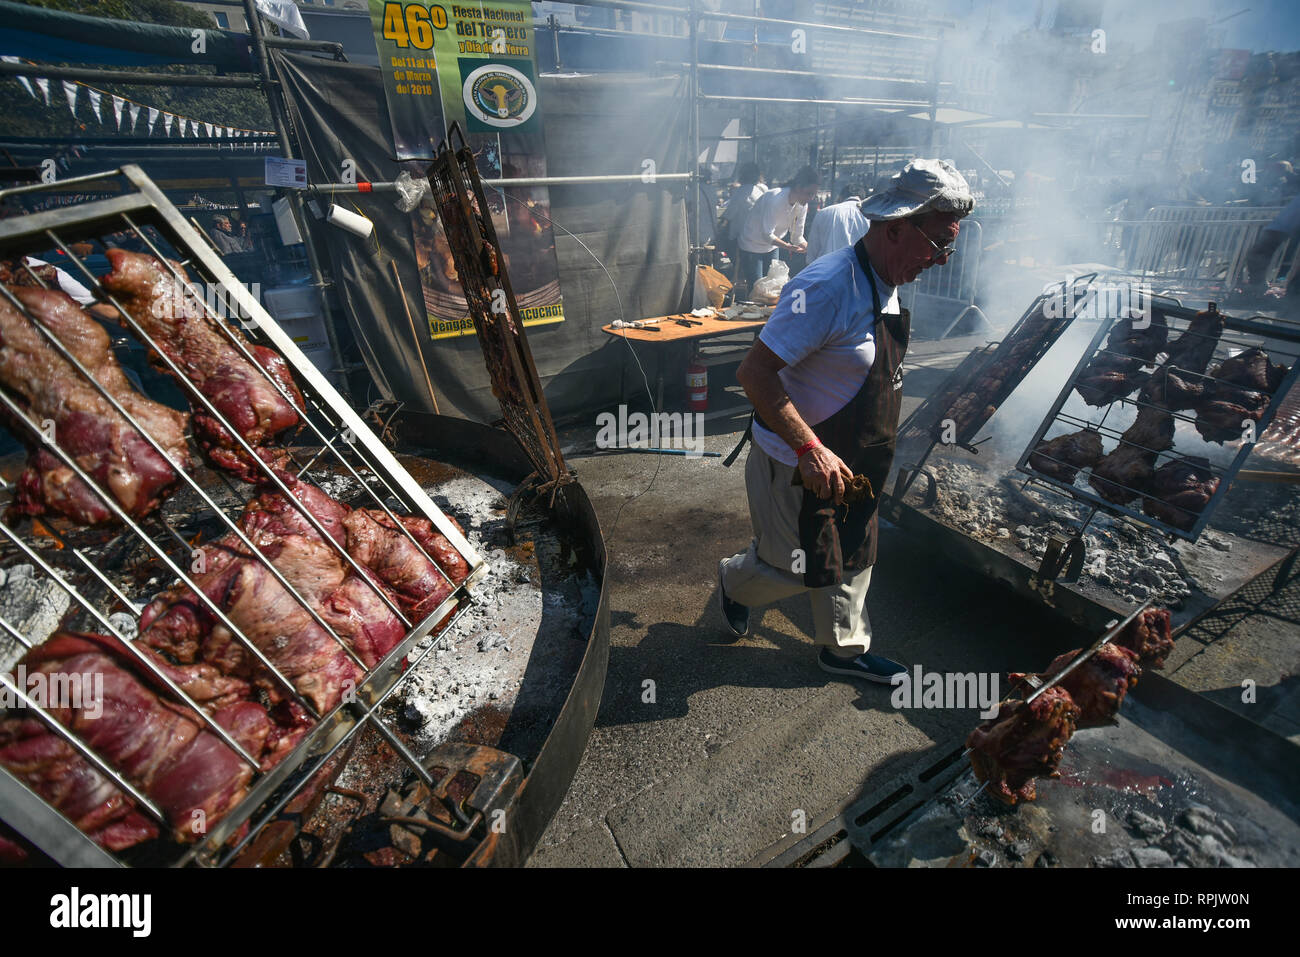 Buenos Aires, Argentina - 20 Aug, 2017: Cooking a traditional South American asado (grill) during the Federal Asado Championship. - Stock Image